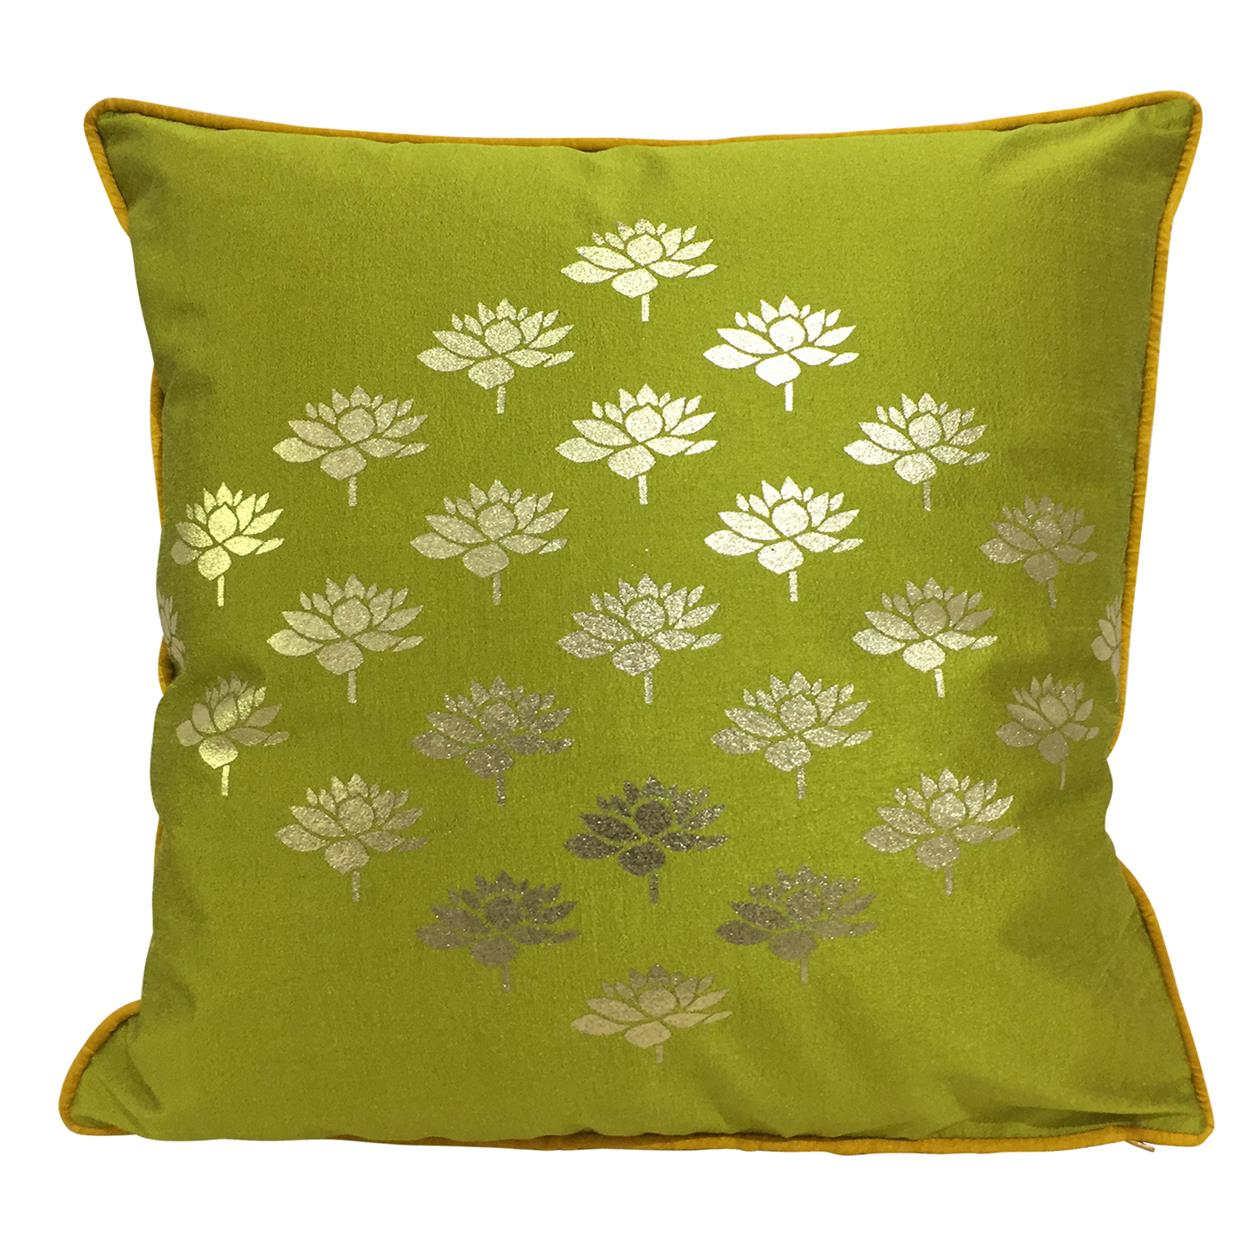 Double Sided Olive Gold Multi Lotus Cushion Cover